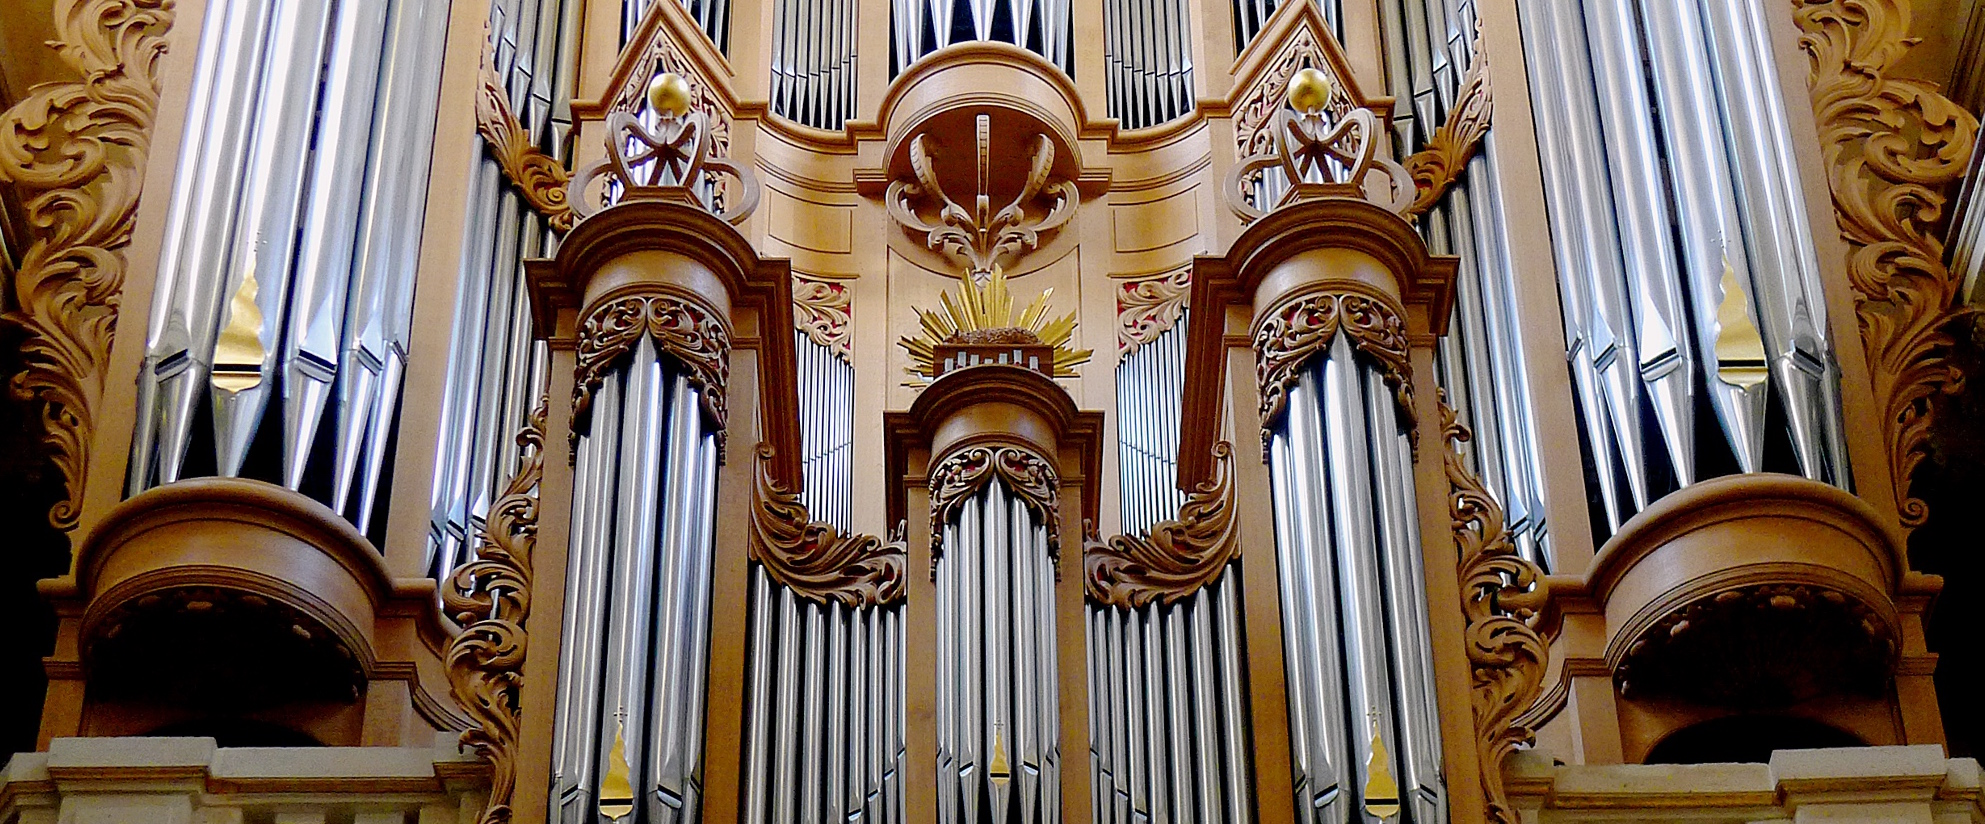 Paris_IV_église_Saint-Louis-en-l'Ile_orgue_détail_rwk